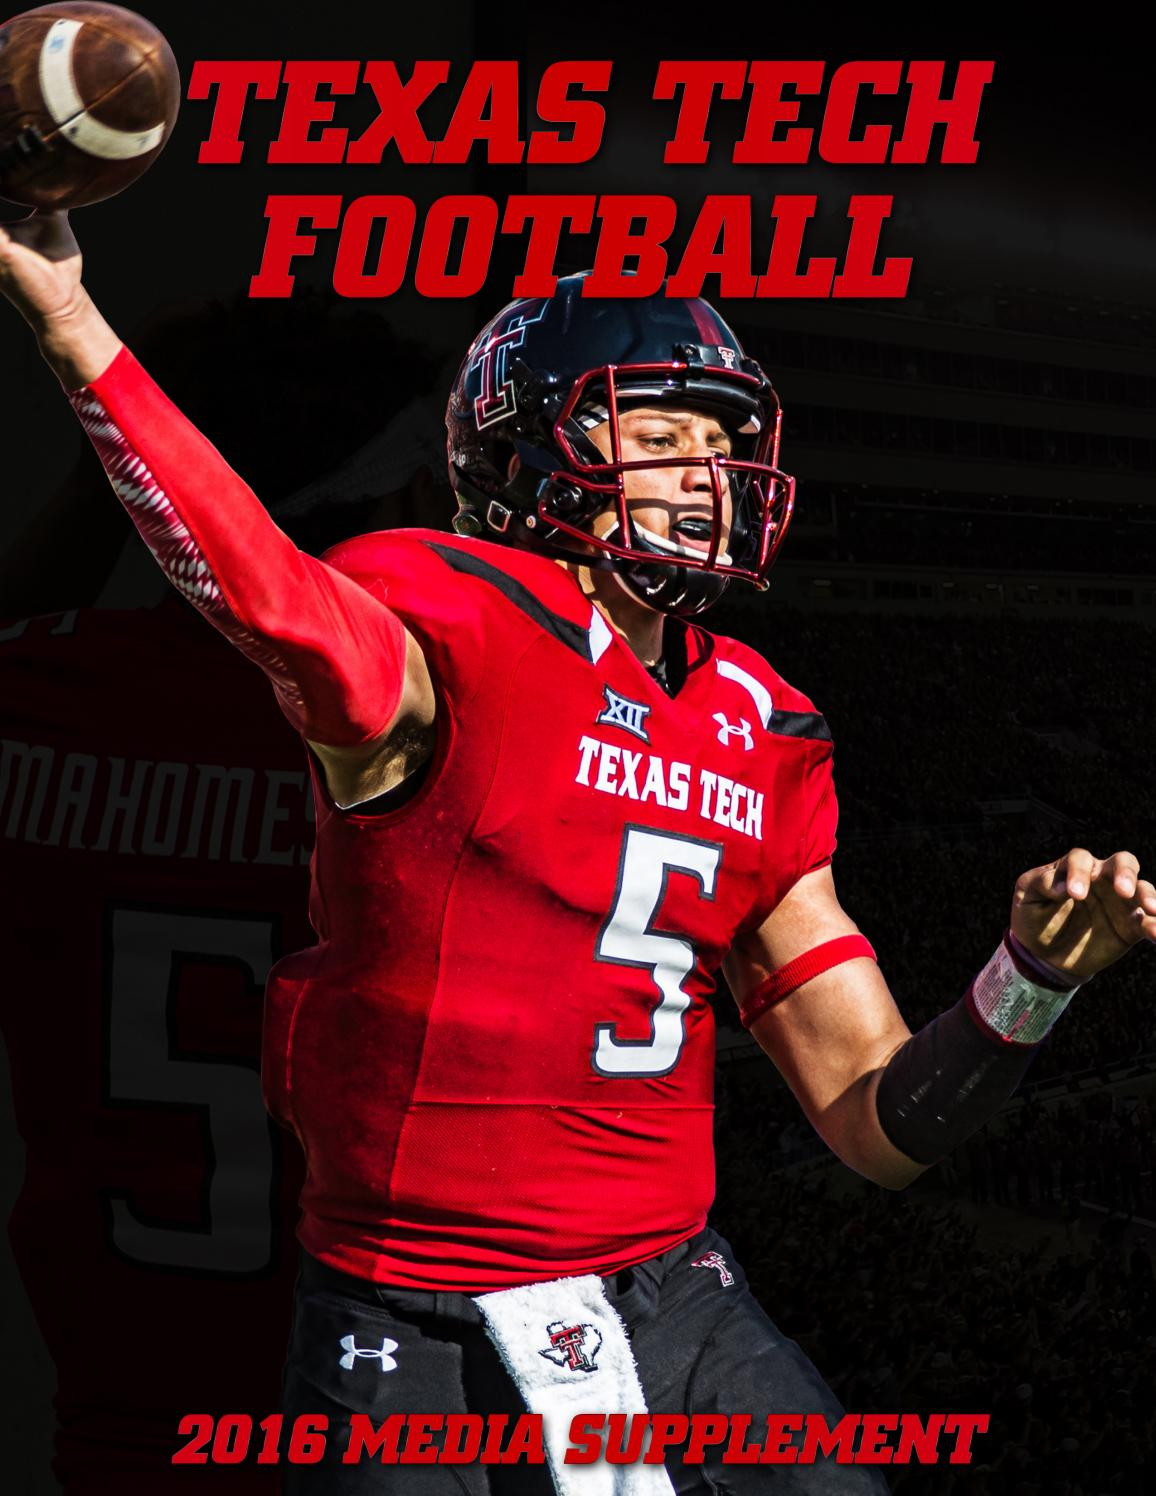 b5cfe33dcd1 2016 Texas Tech Football Media Supplement by Texas Tech Athletics - issuu